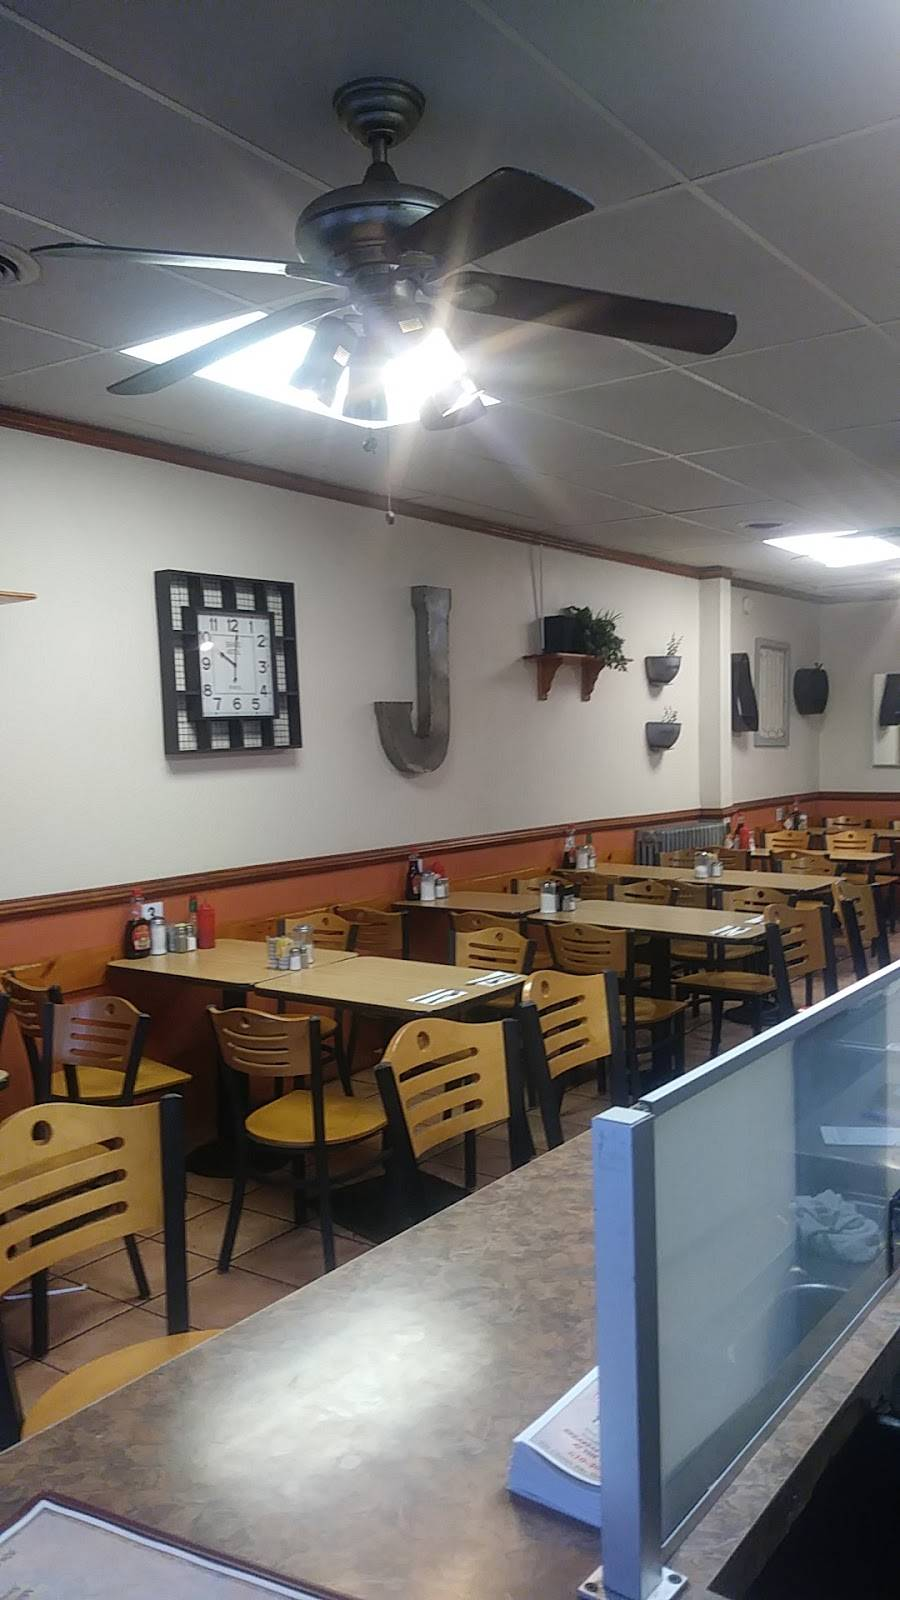 Jimmys | restaurant | 926 Chester Pike #1413, Sharon Hill, PA 19079, USA | 6104612819 OR +1 610-461-2819